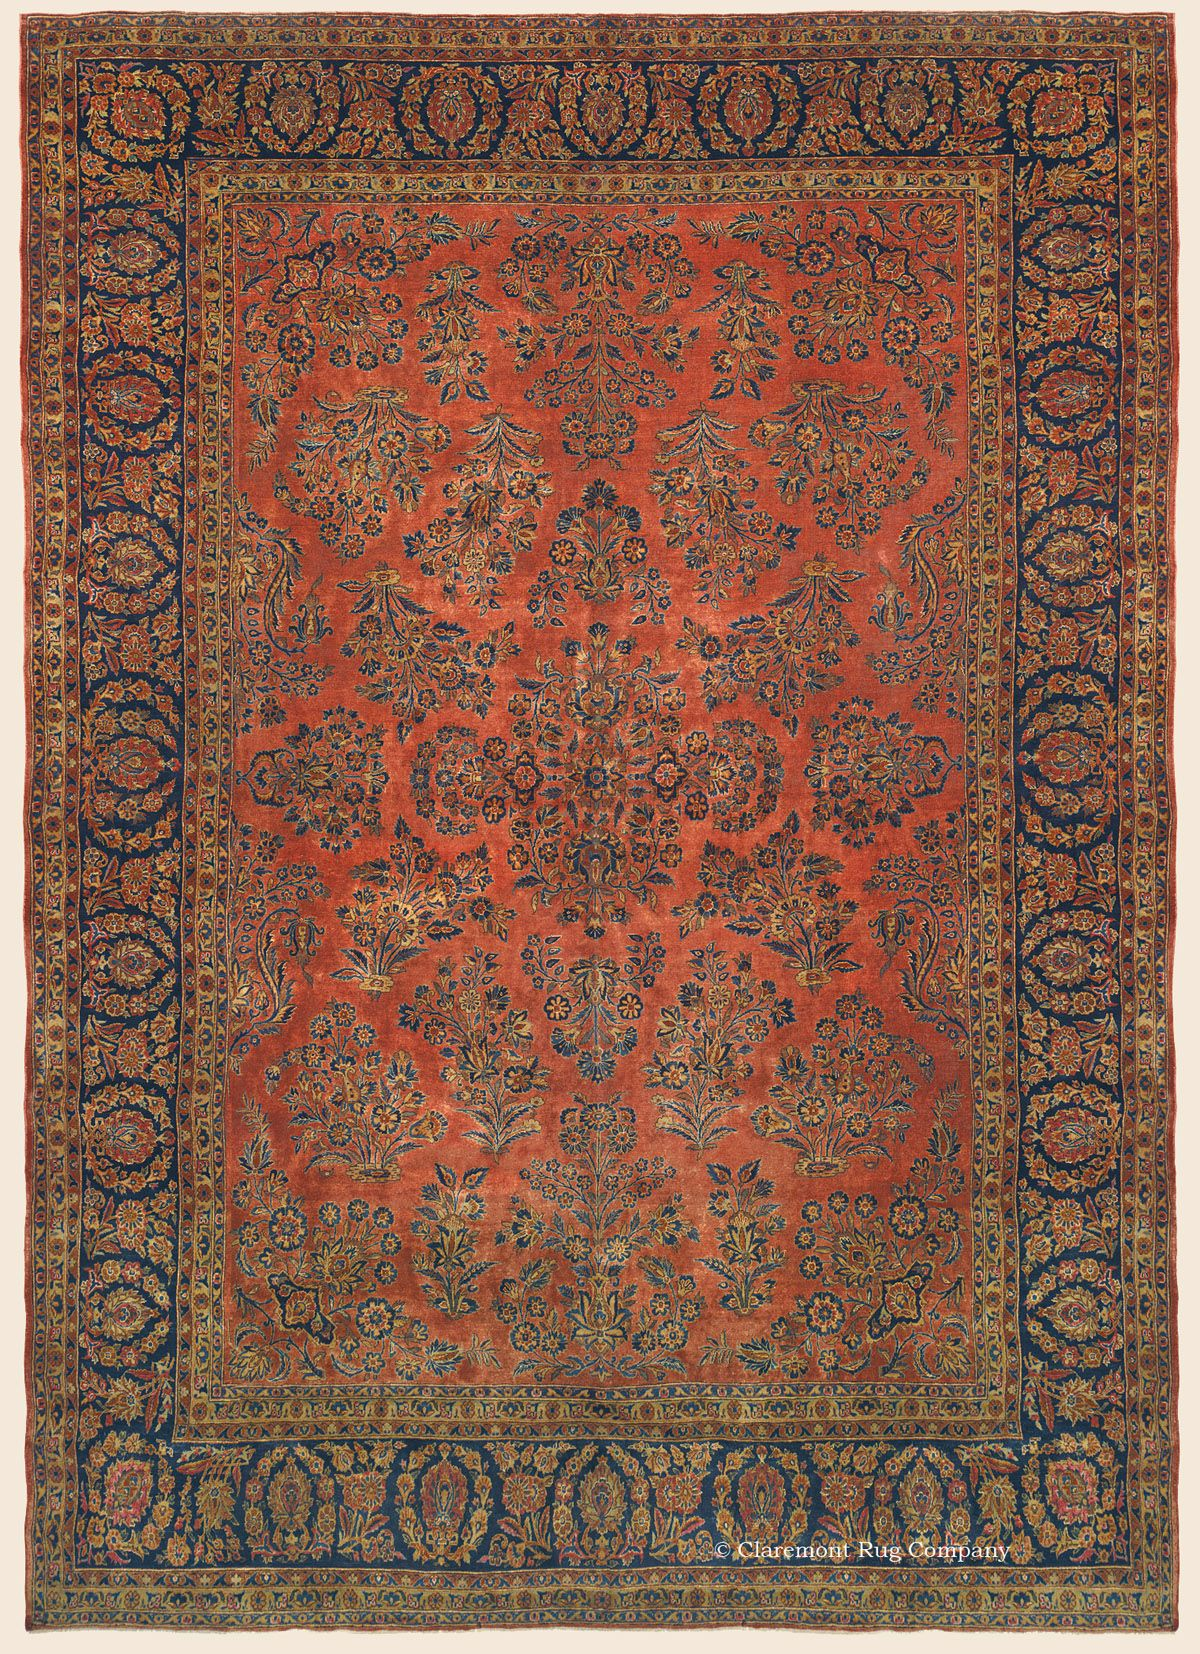 Kerke Kashan 9 10 X 14 2 Circa 1910 Central Persian Antique Rug Claremont Rug Company Antique Rug Living Room Rugs Claremont Rug Company